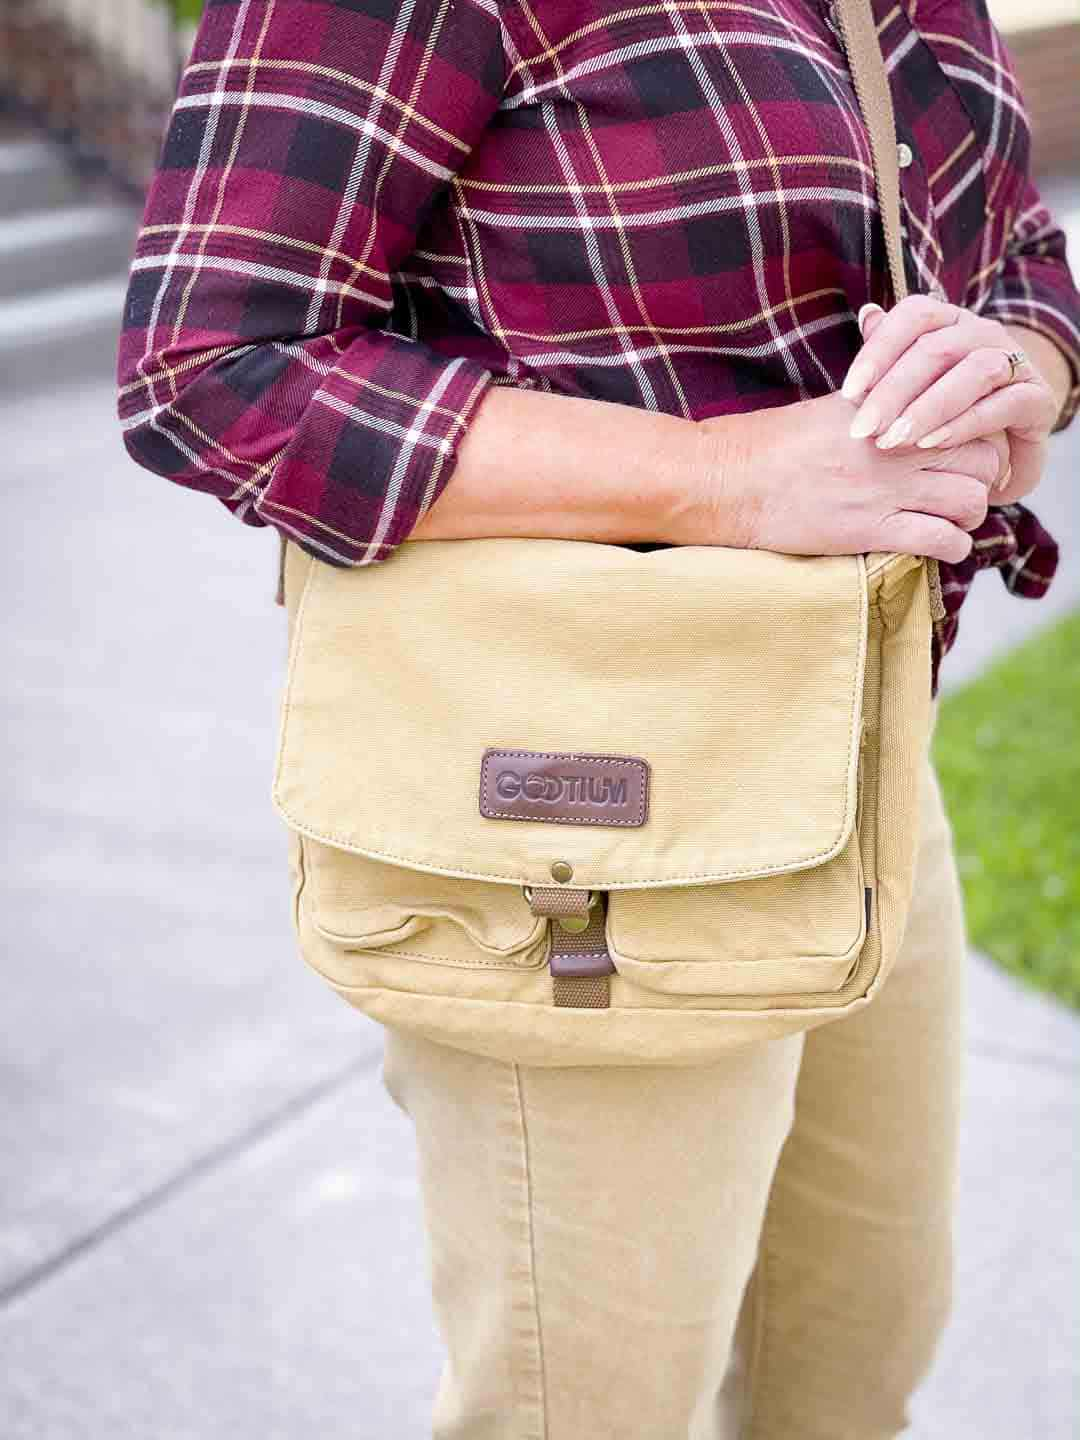 Over 40 Fashion Blogger, Tania Stephens is showing a canvas messenger bag